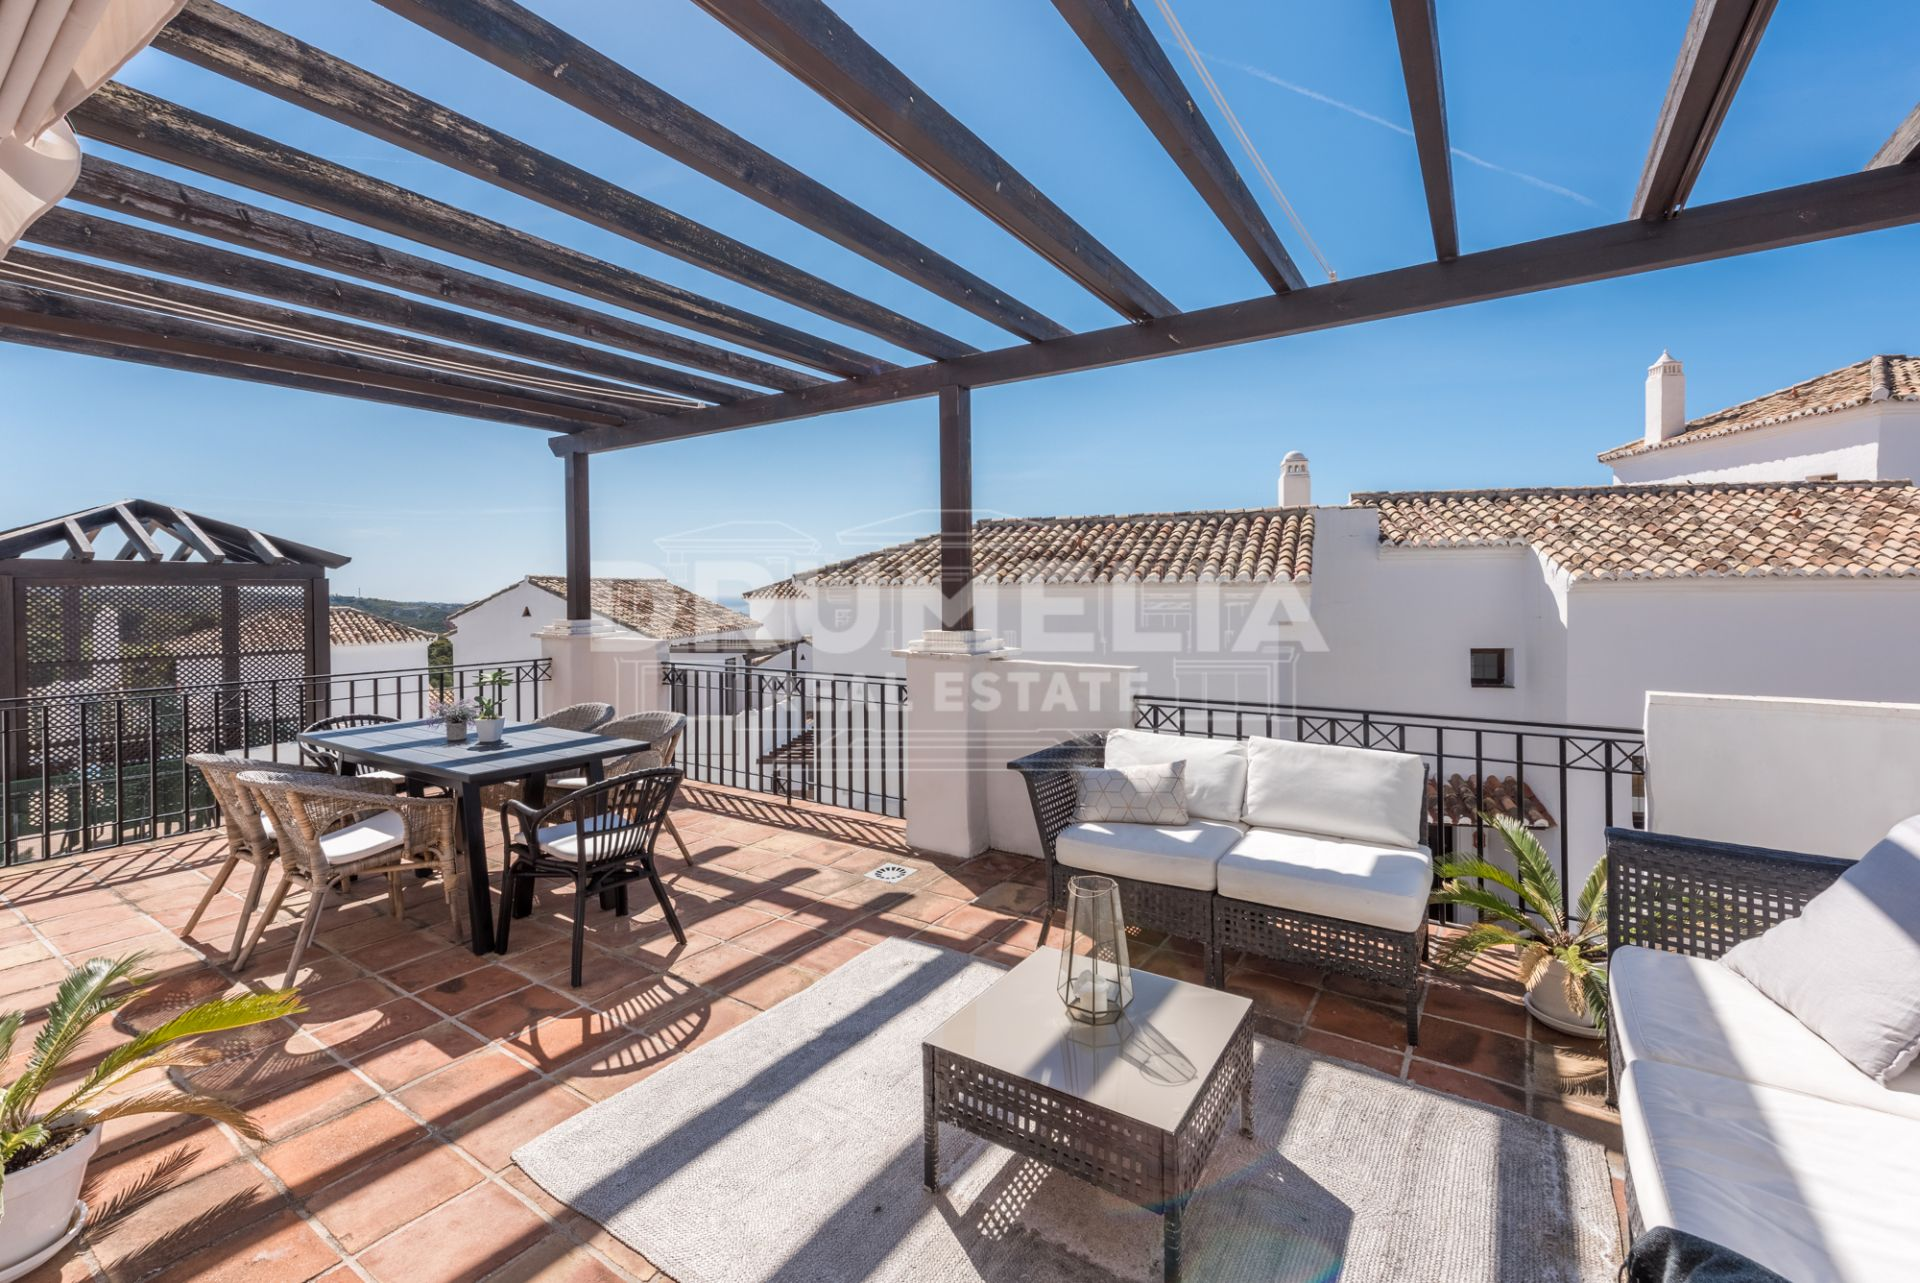 Marbella East, Superb Modern Apartment in Los Altos de los Monteros, Marbella East (Marbella)